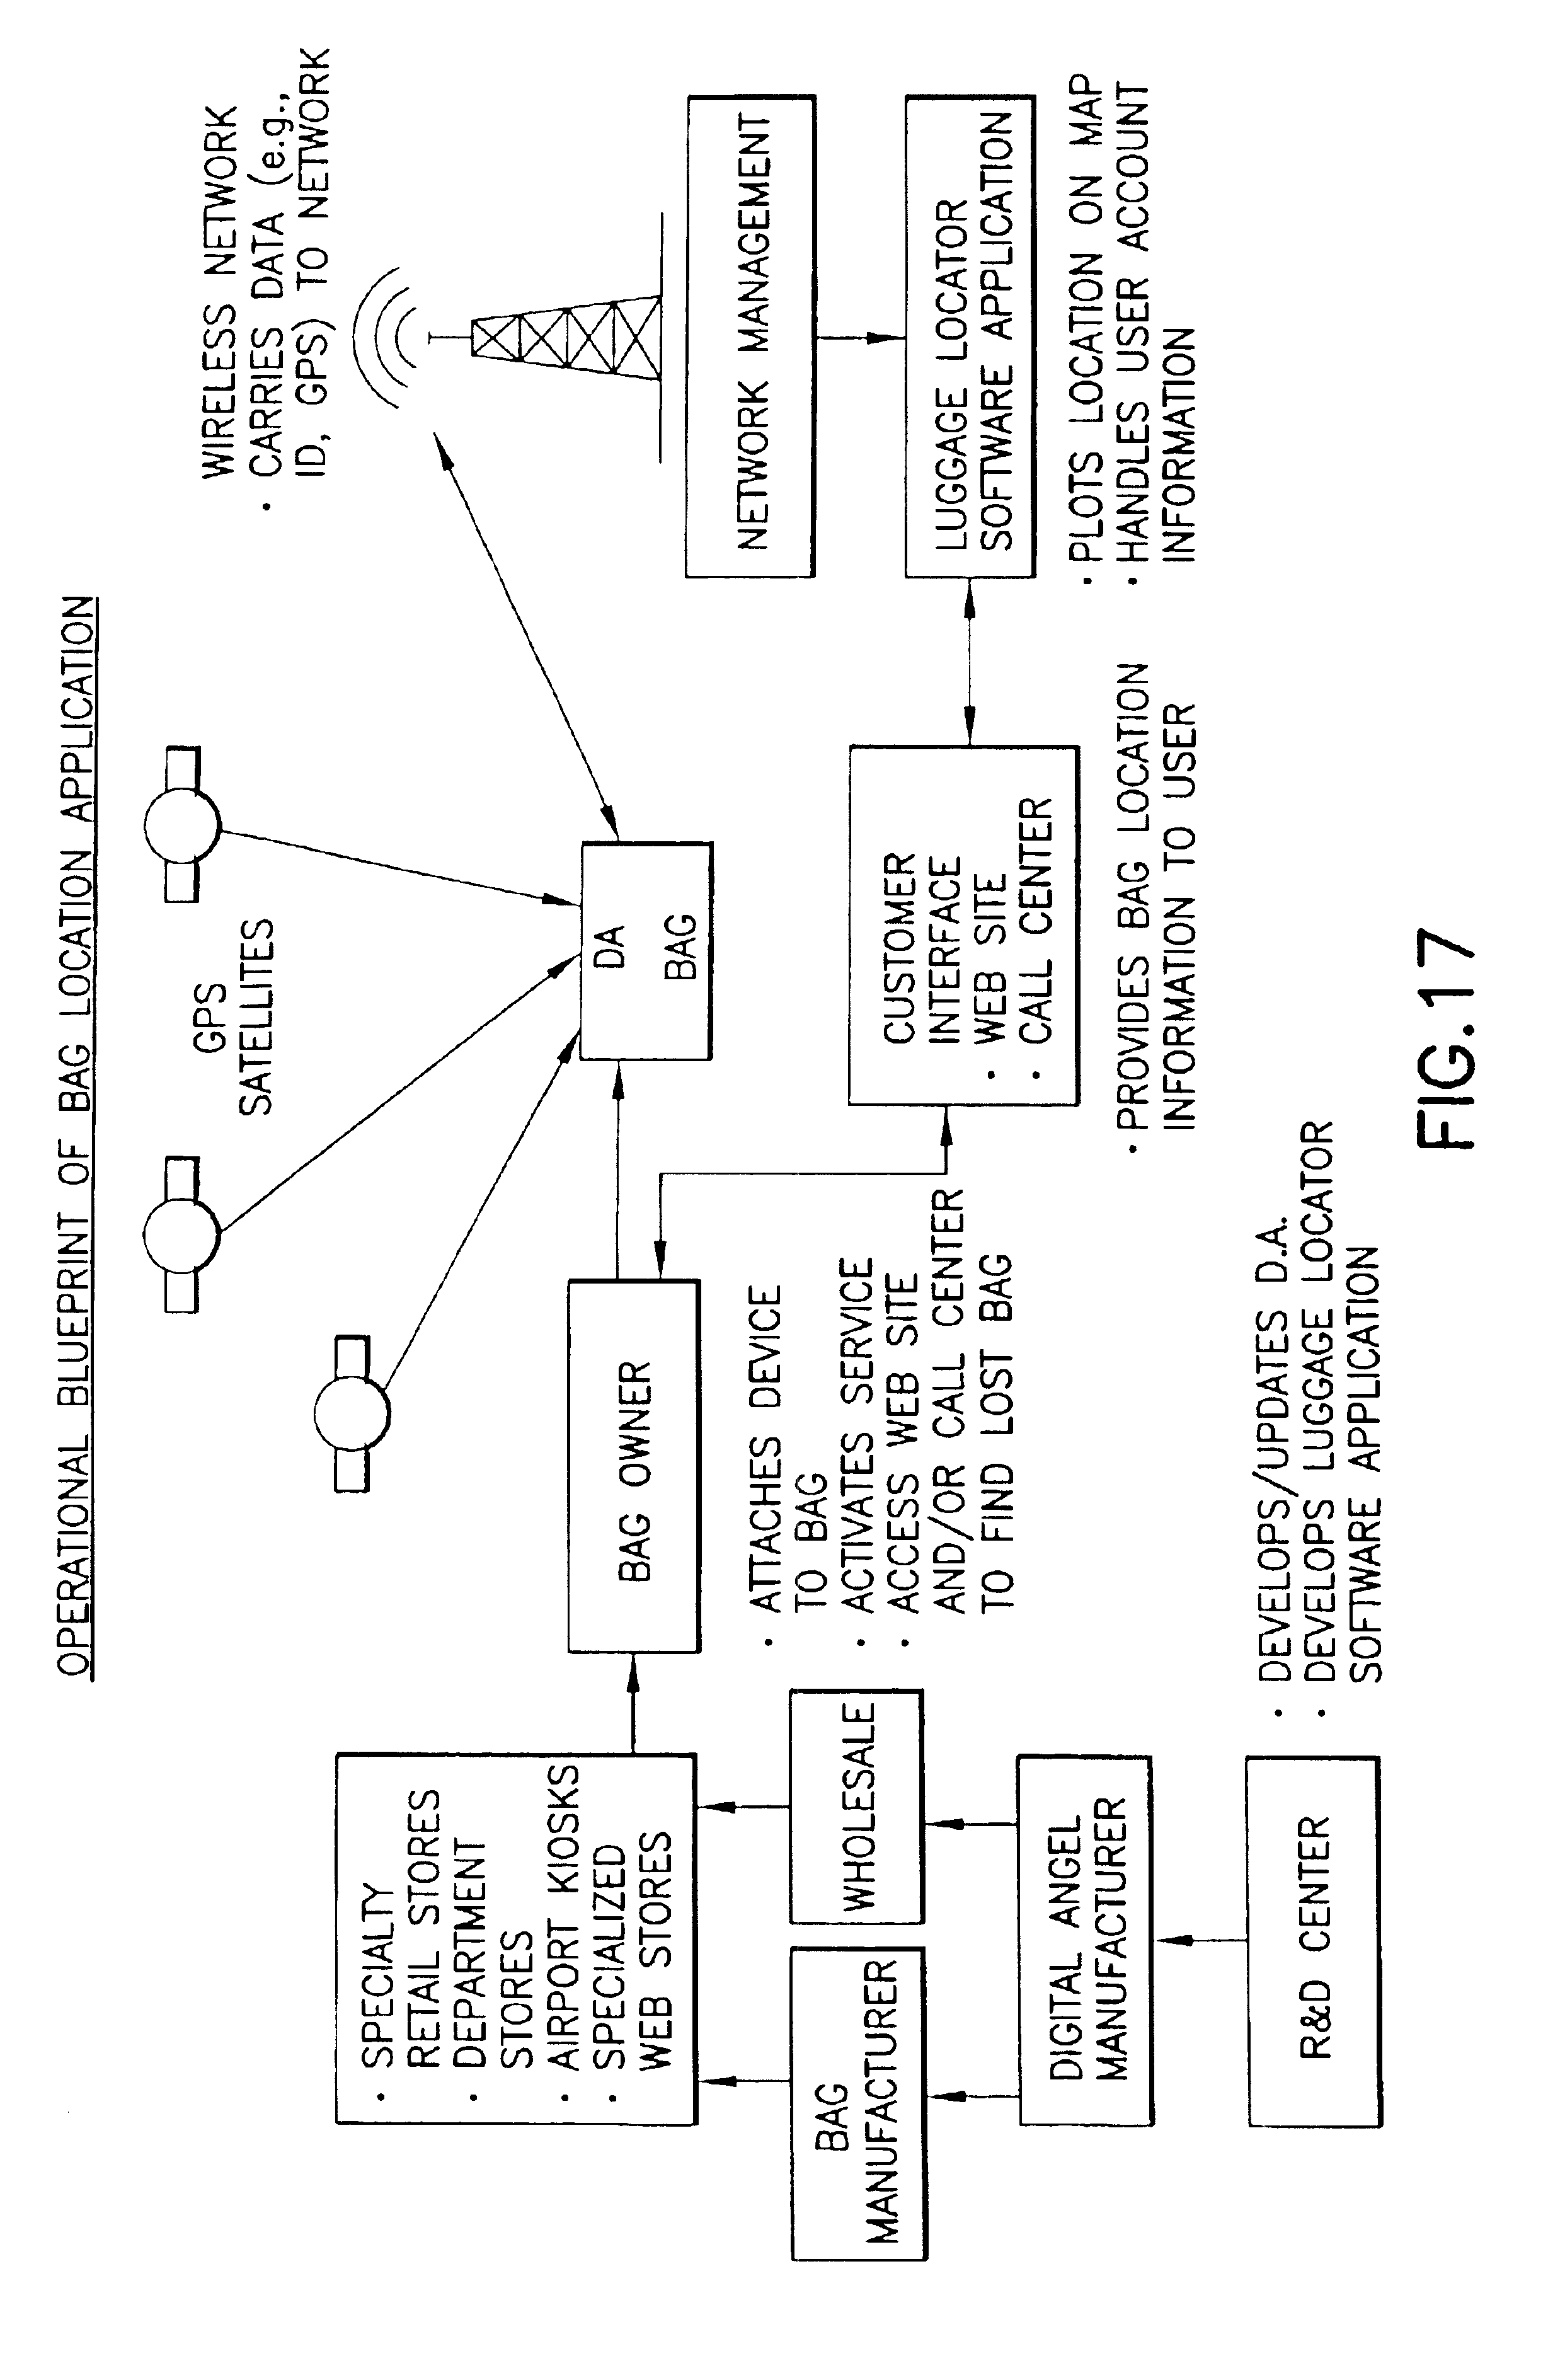 Patent Us 6847892 B2 Luggage Security Alarm Schematic 0 Petitions